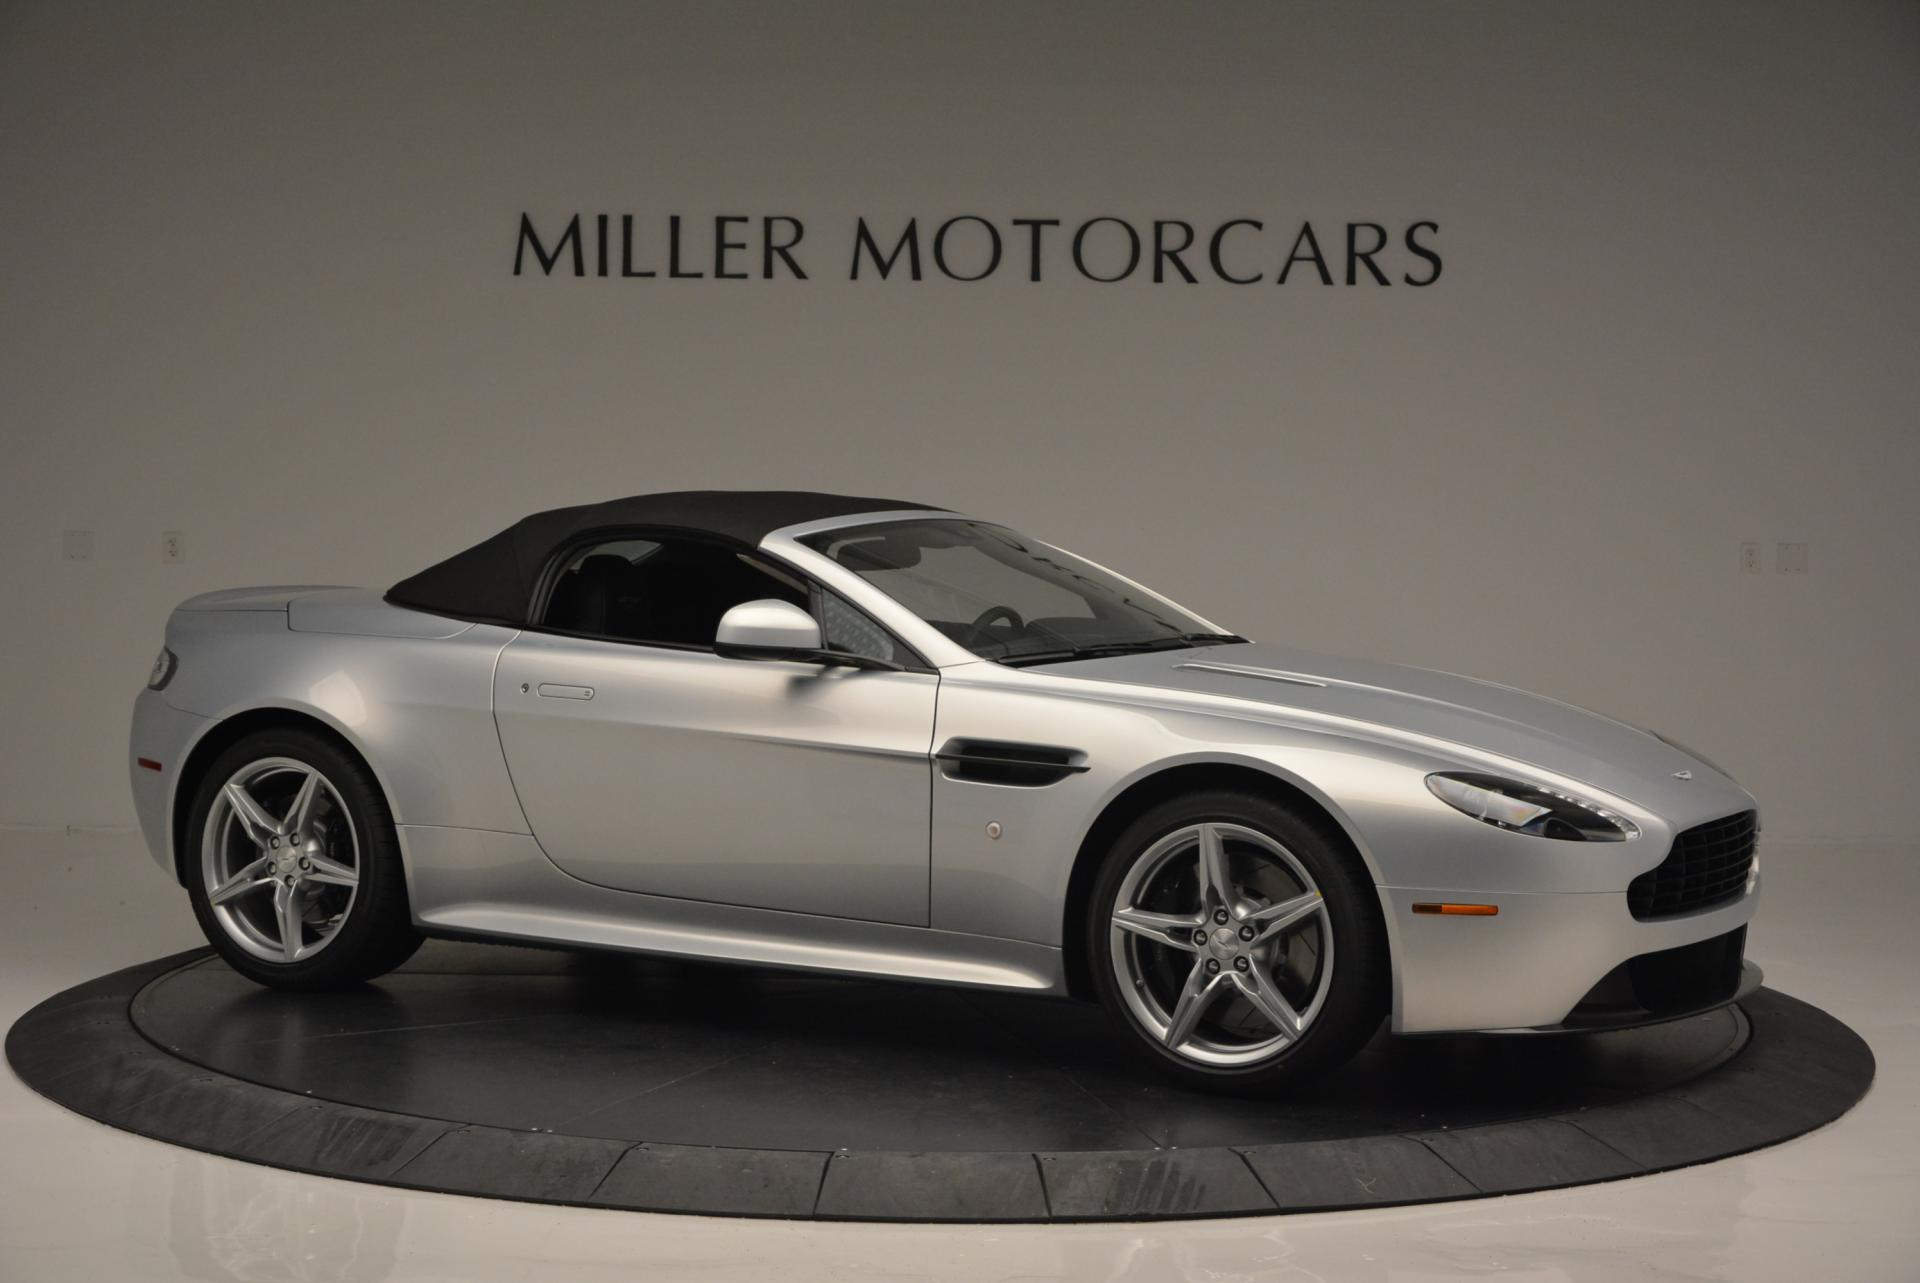 New 2016 Aston Martin V8 Vantage Gts Roadster For Sale Special Pricing Aston Martin Of Greenwich Stock A1183